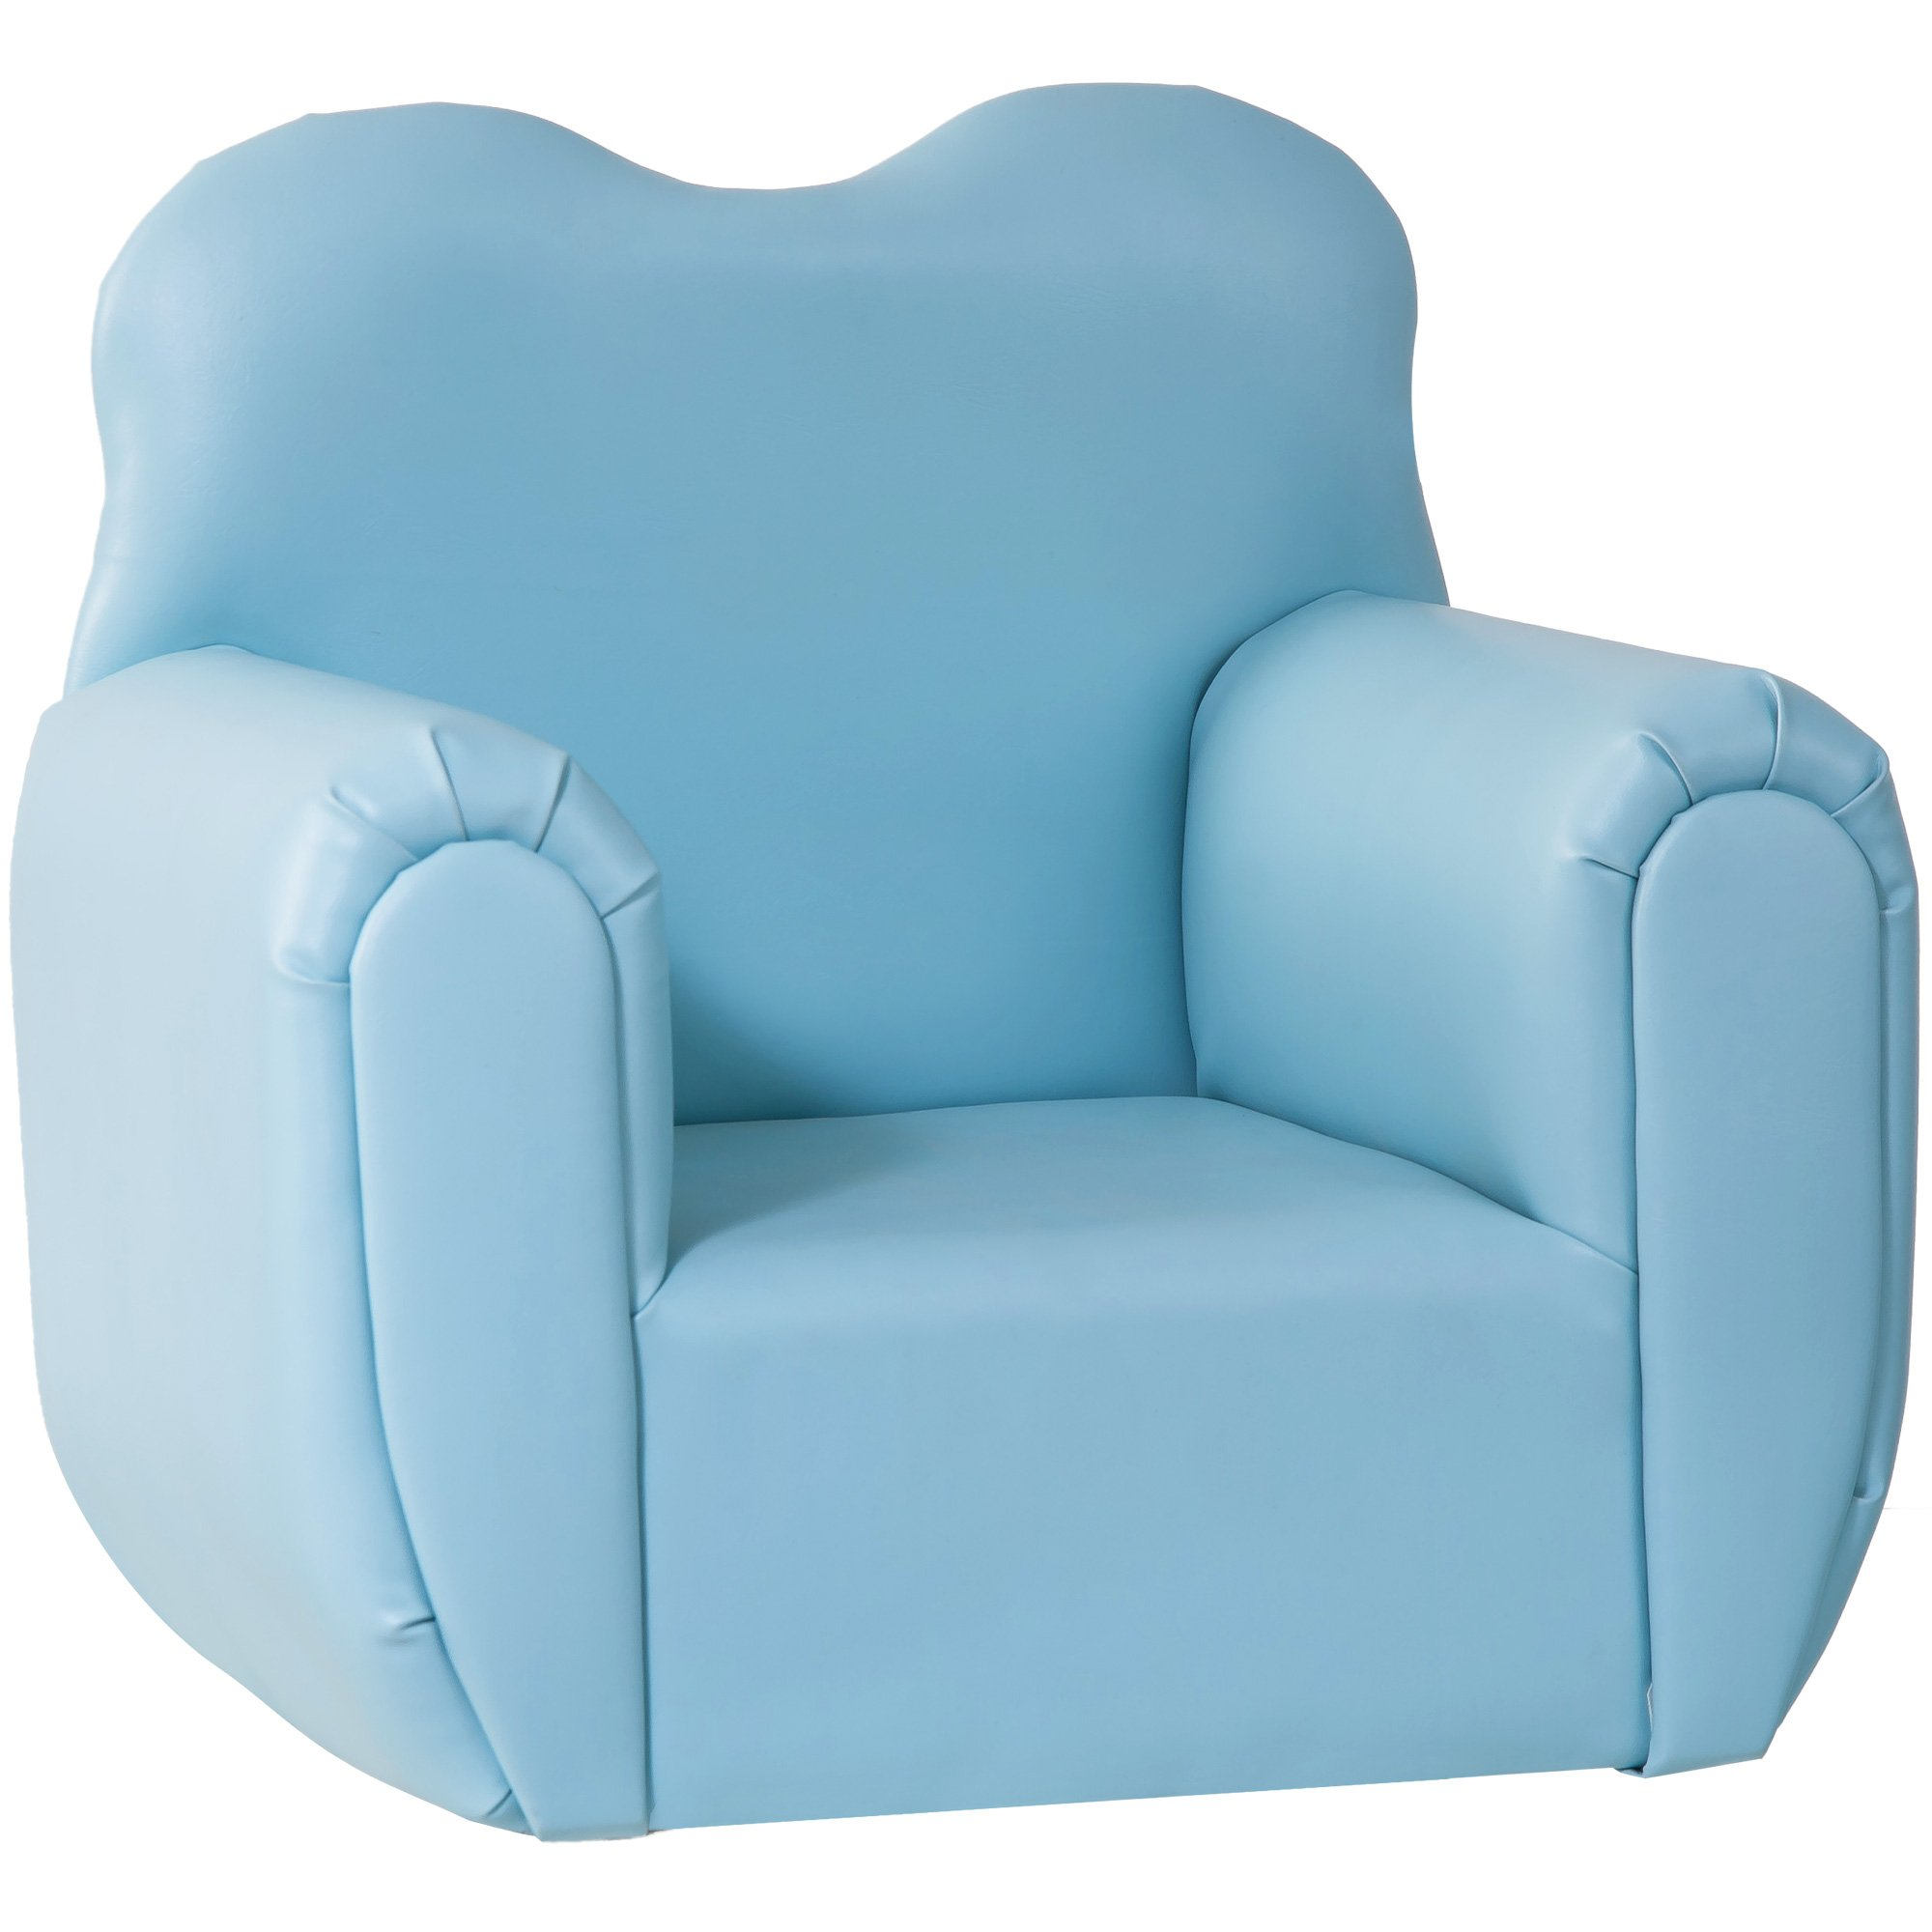 Harper&Bright Designs PP038175 Kids Sofa Children Armrest Chair, 19.7'' L x13.8 W x 19.7'' H, Blue